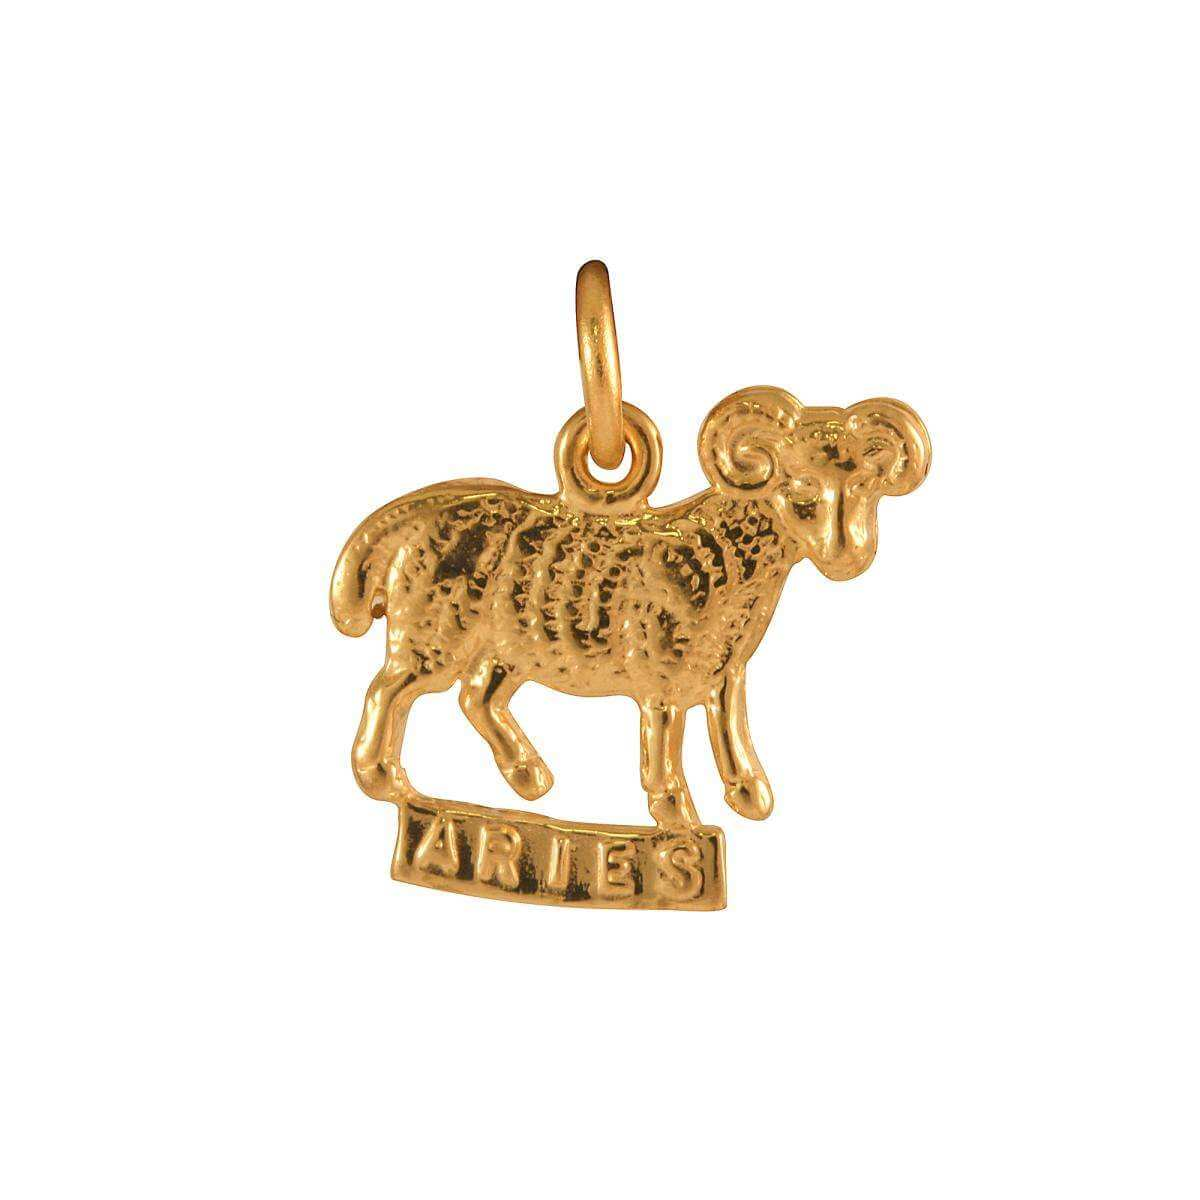 9ct Gold Aries Ram Charm